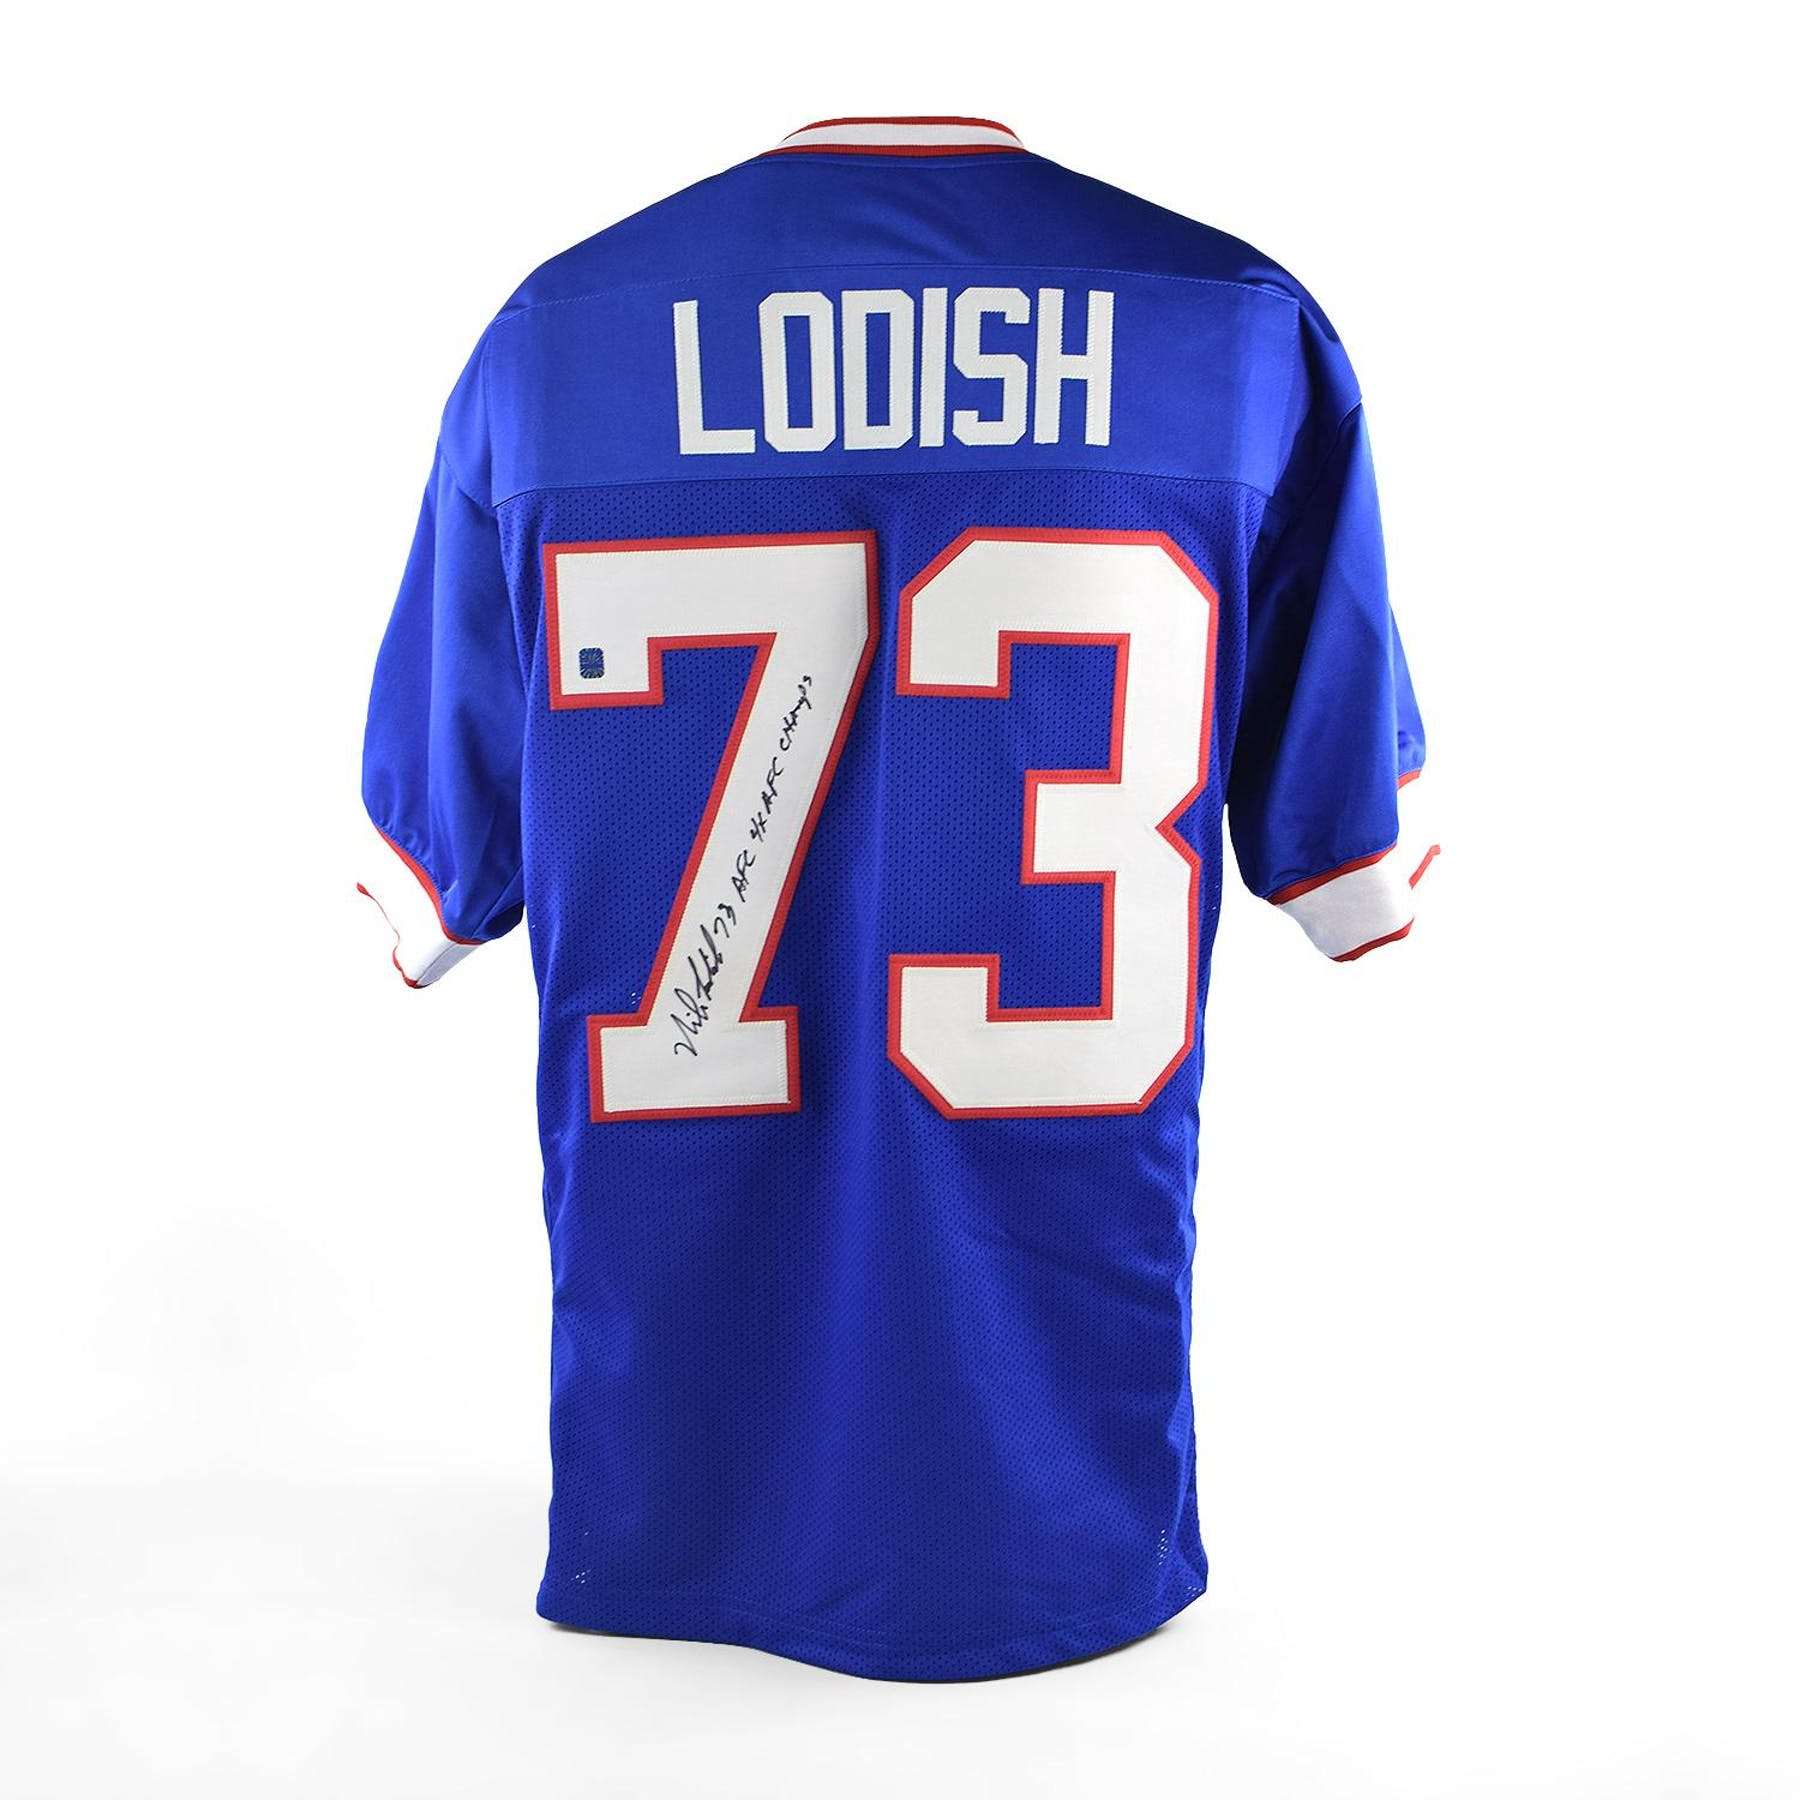 new products 68616 6252d Mike Lodish Autographed Buffalo Bills Football Jersey